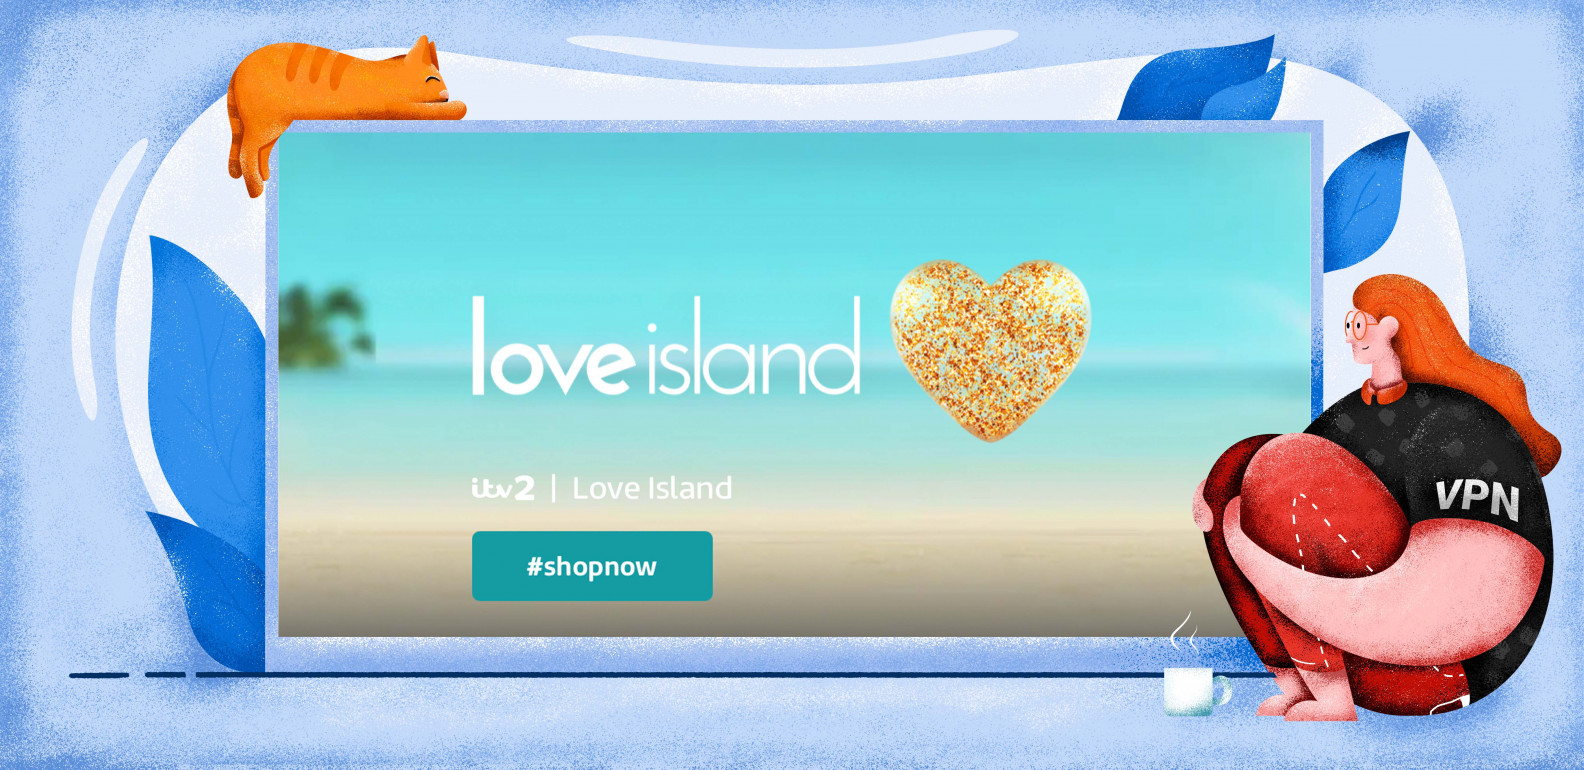 How to watch the British Love Island outside of the UK